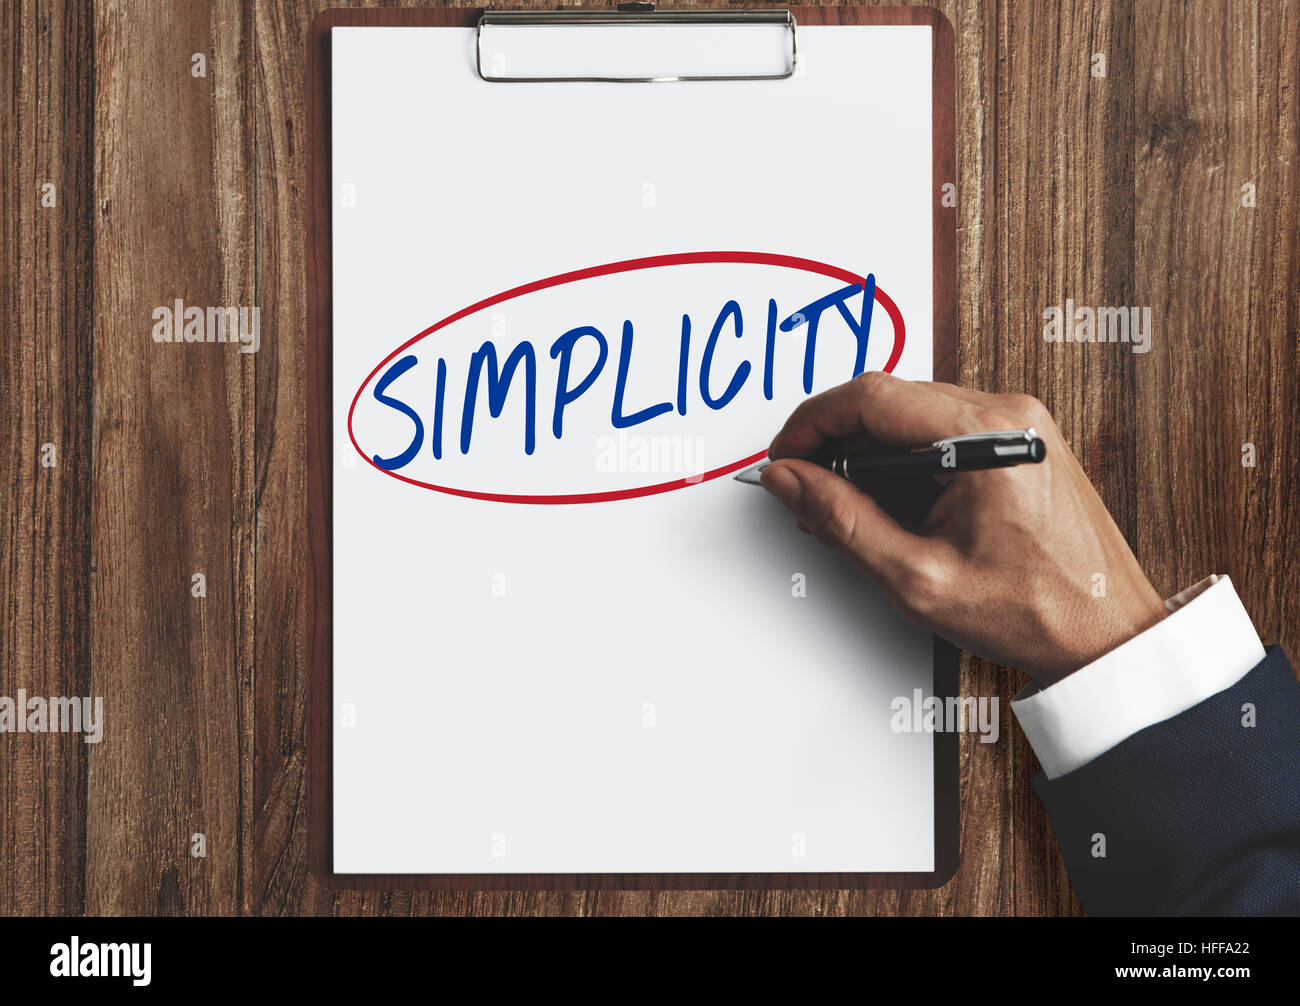 Simplicity Contemporary Minimal Peace Concept Stockfotos ...